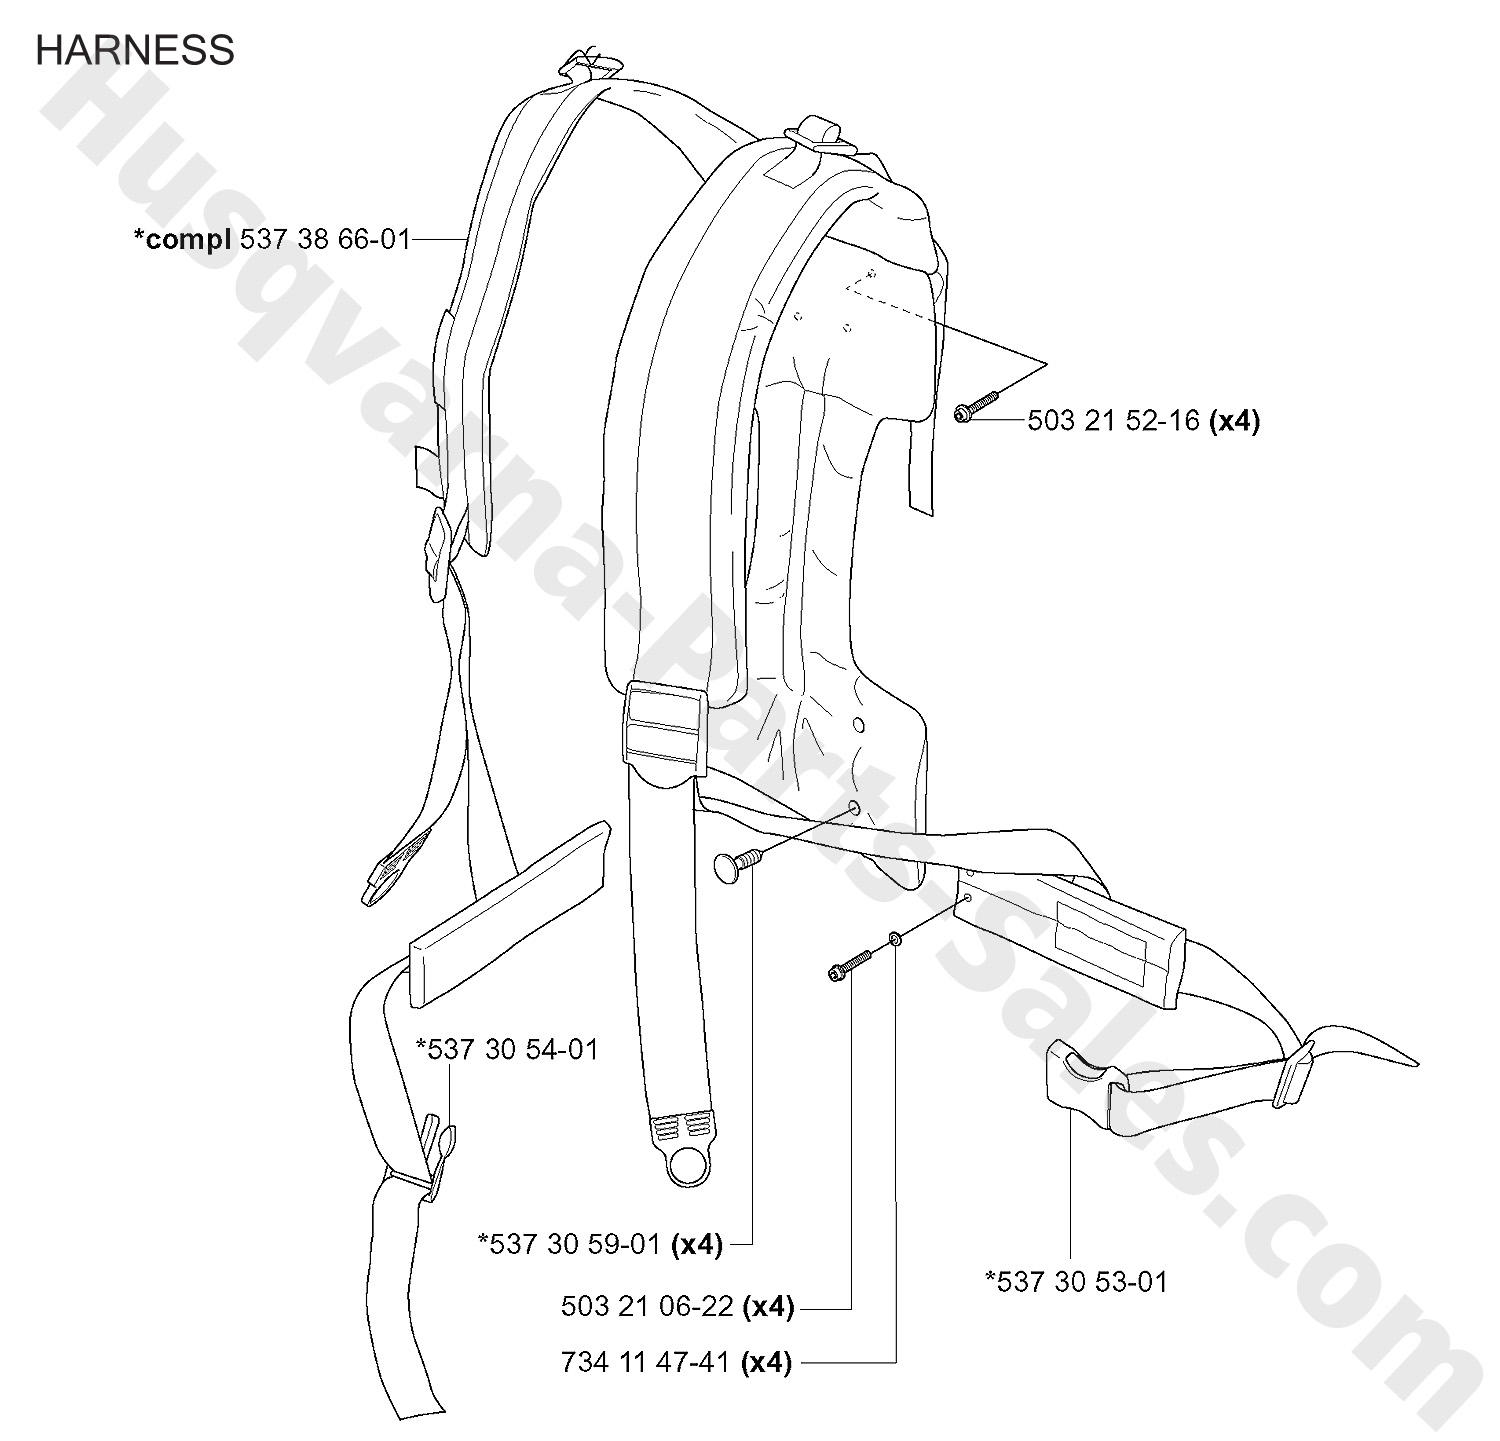 356bt Husqvarna Backpack Blower Harness Parts